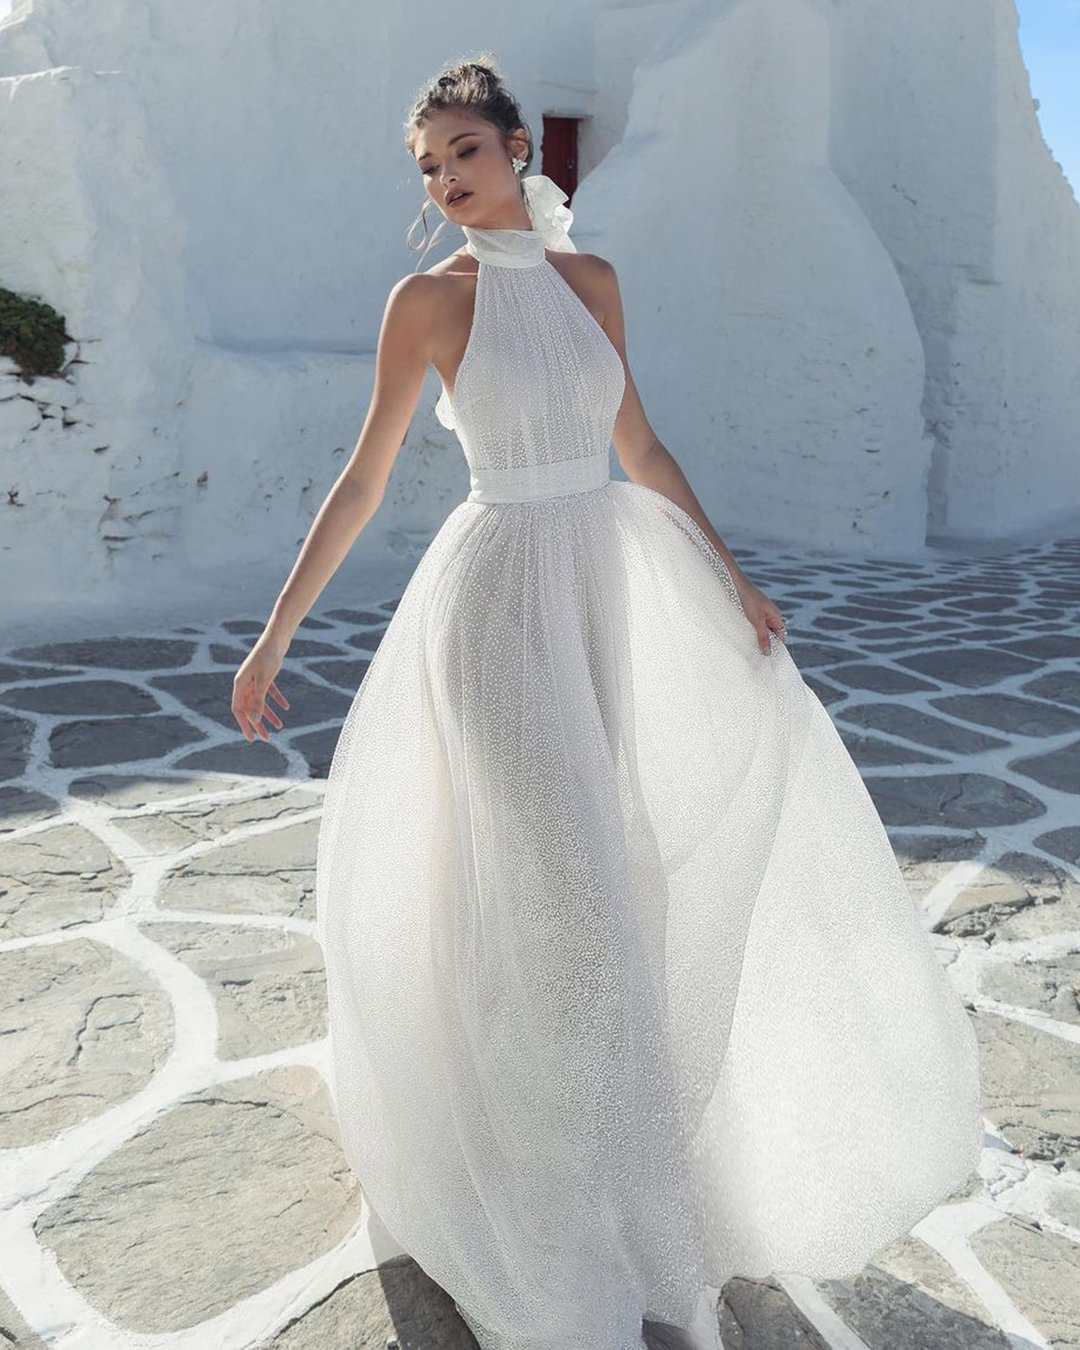 greek wedding dresses a line simple halter neckline beach julie vino